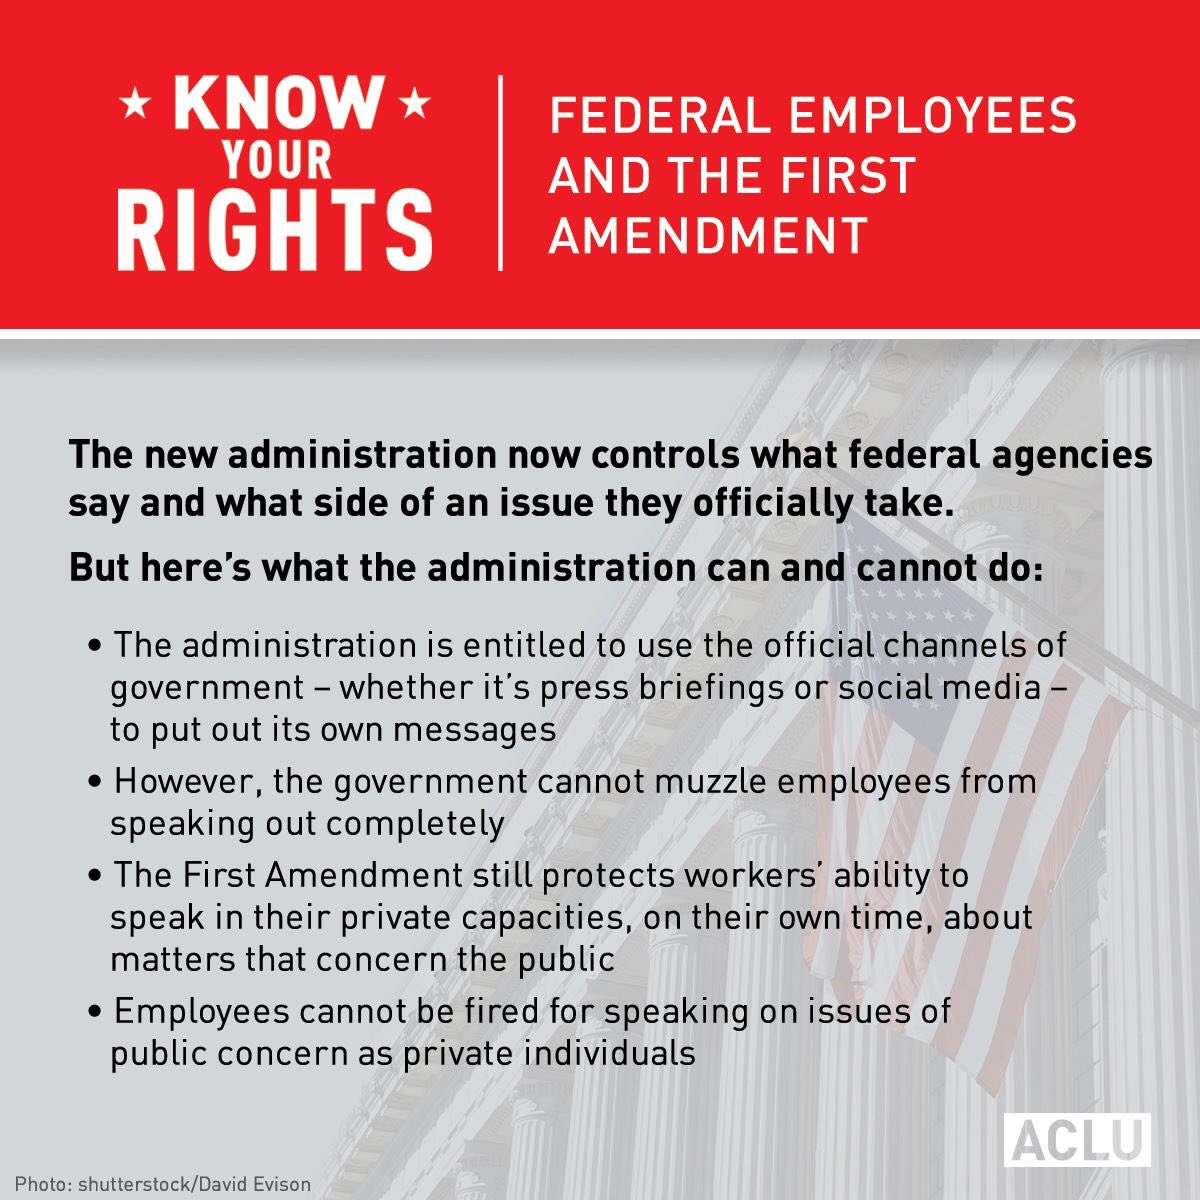 KNOW YOUR RIGHTS: Federal employees and the First Amendment.